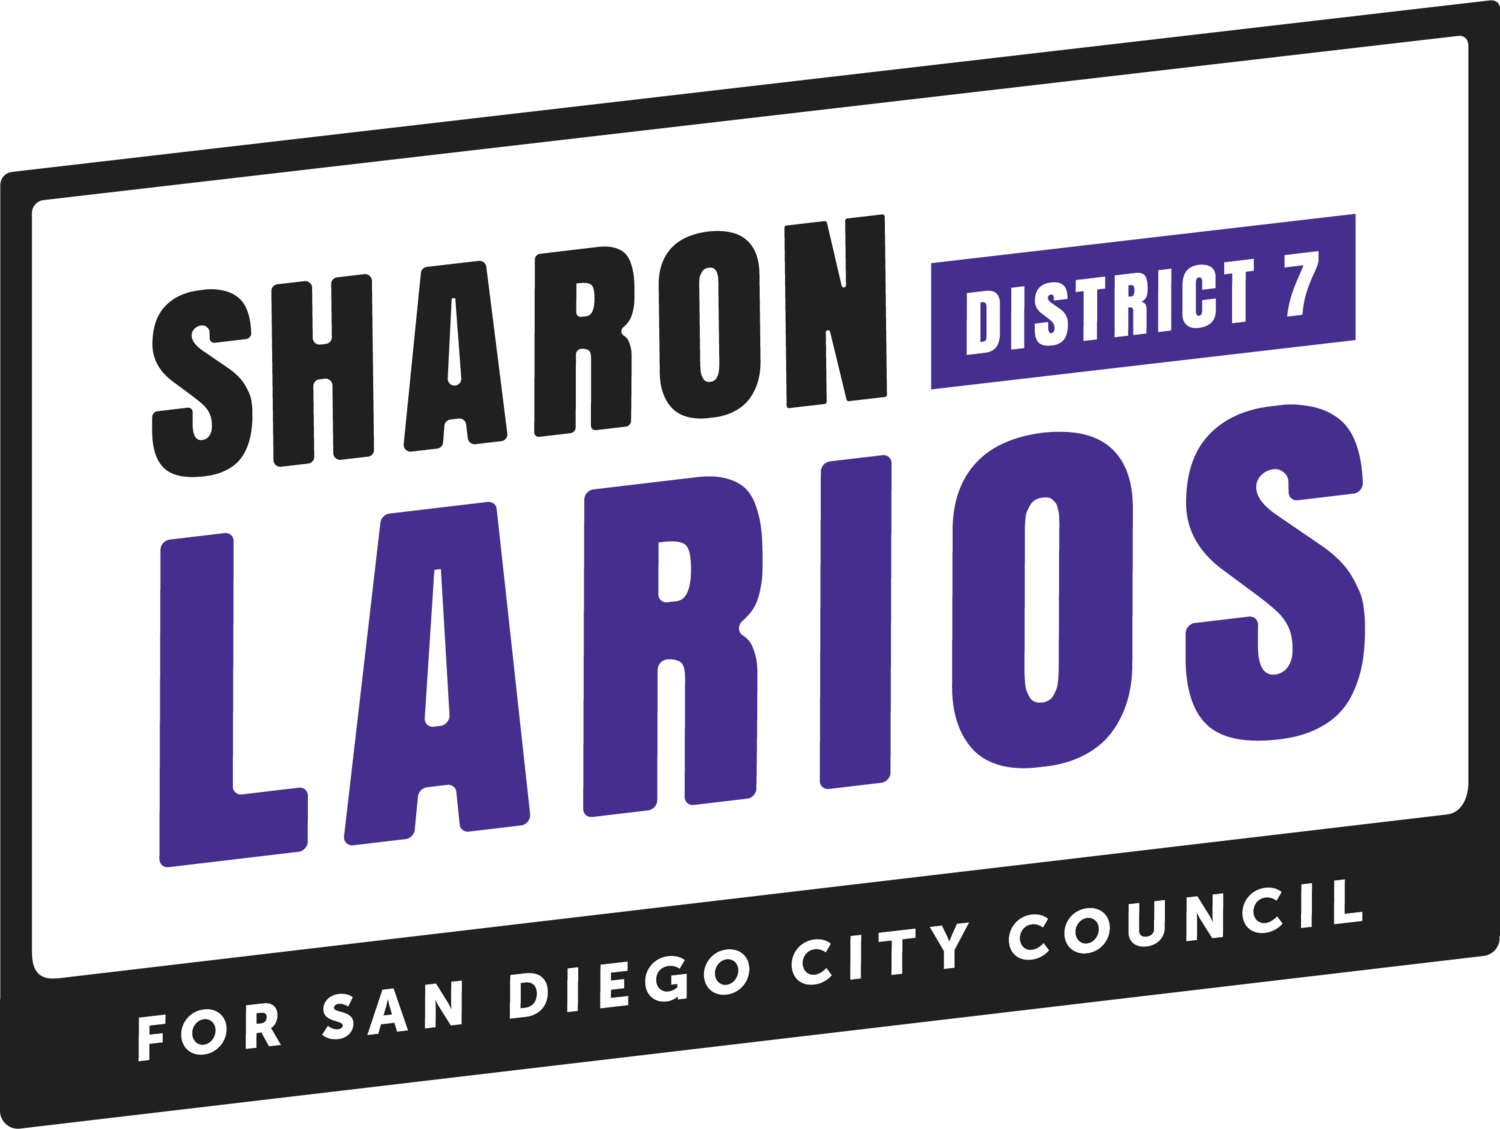 Sharon Larios for San Diego City Council District 7 2020